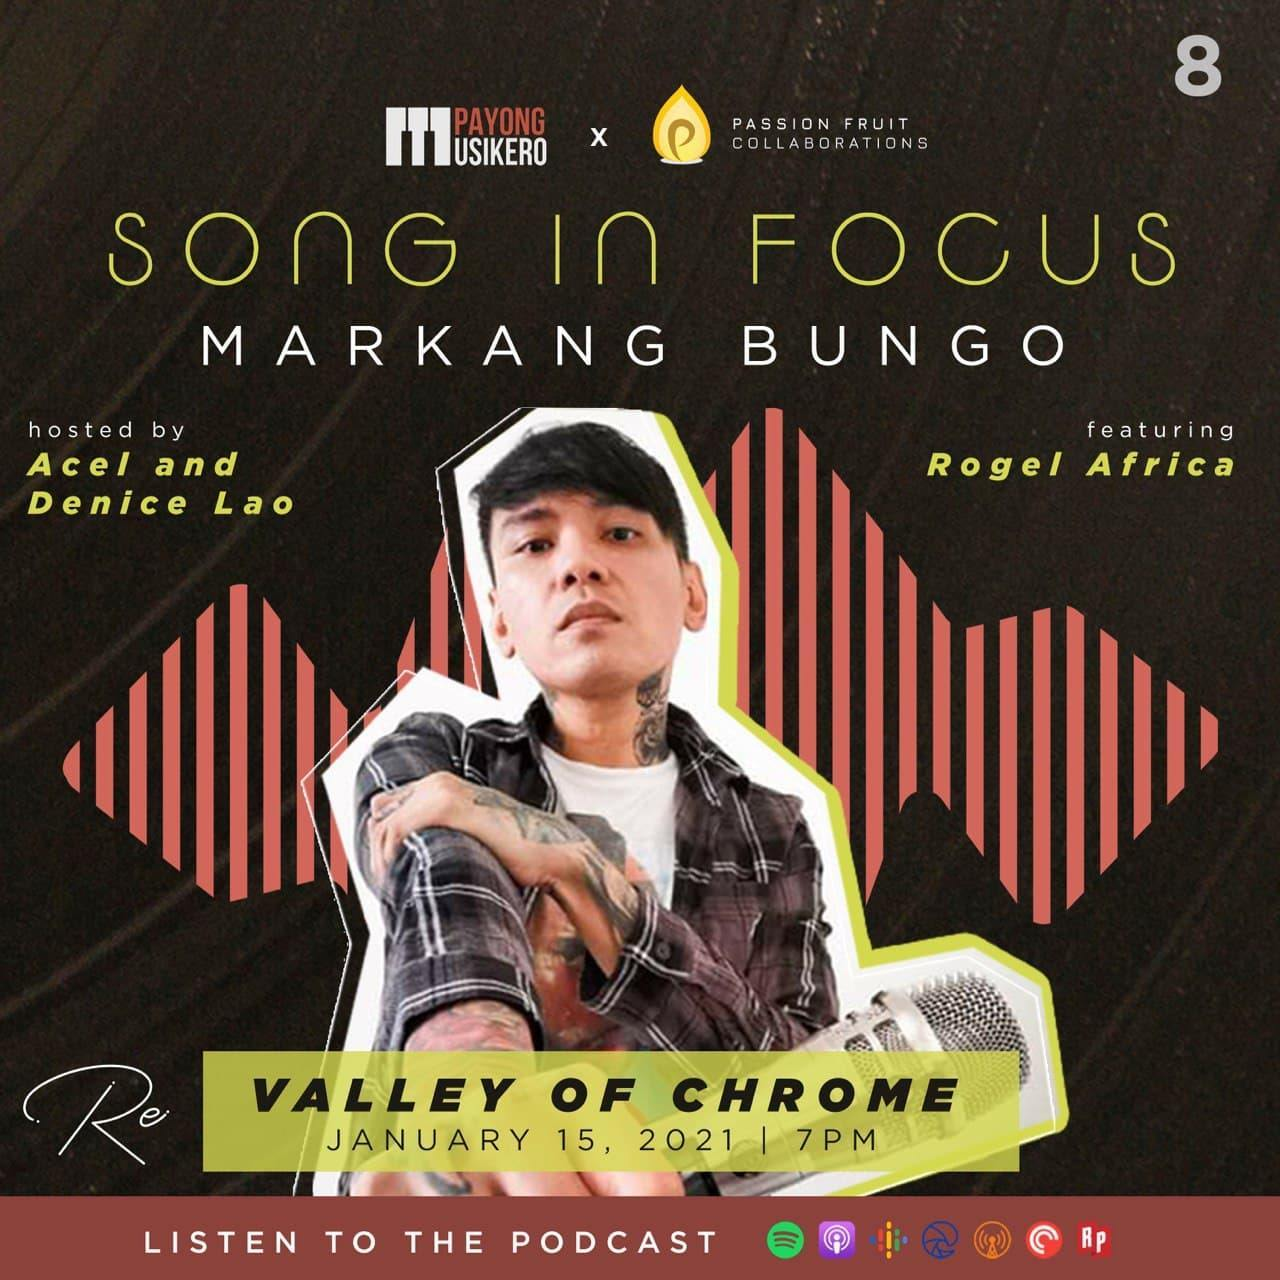 Valley Of Chrome's Rogel Africa Talks Death And Legacy In Song In Focus Podcast